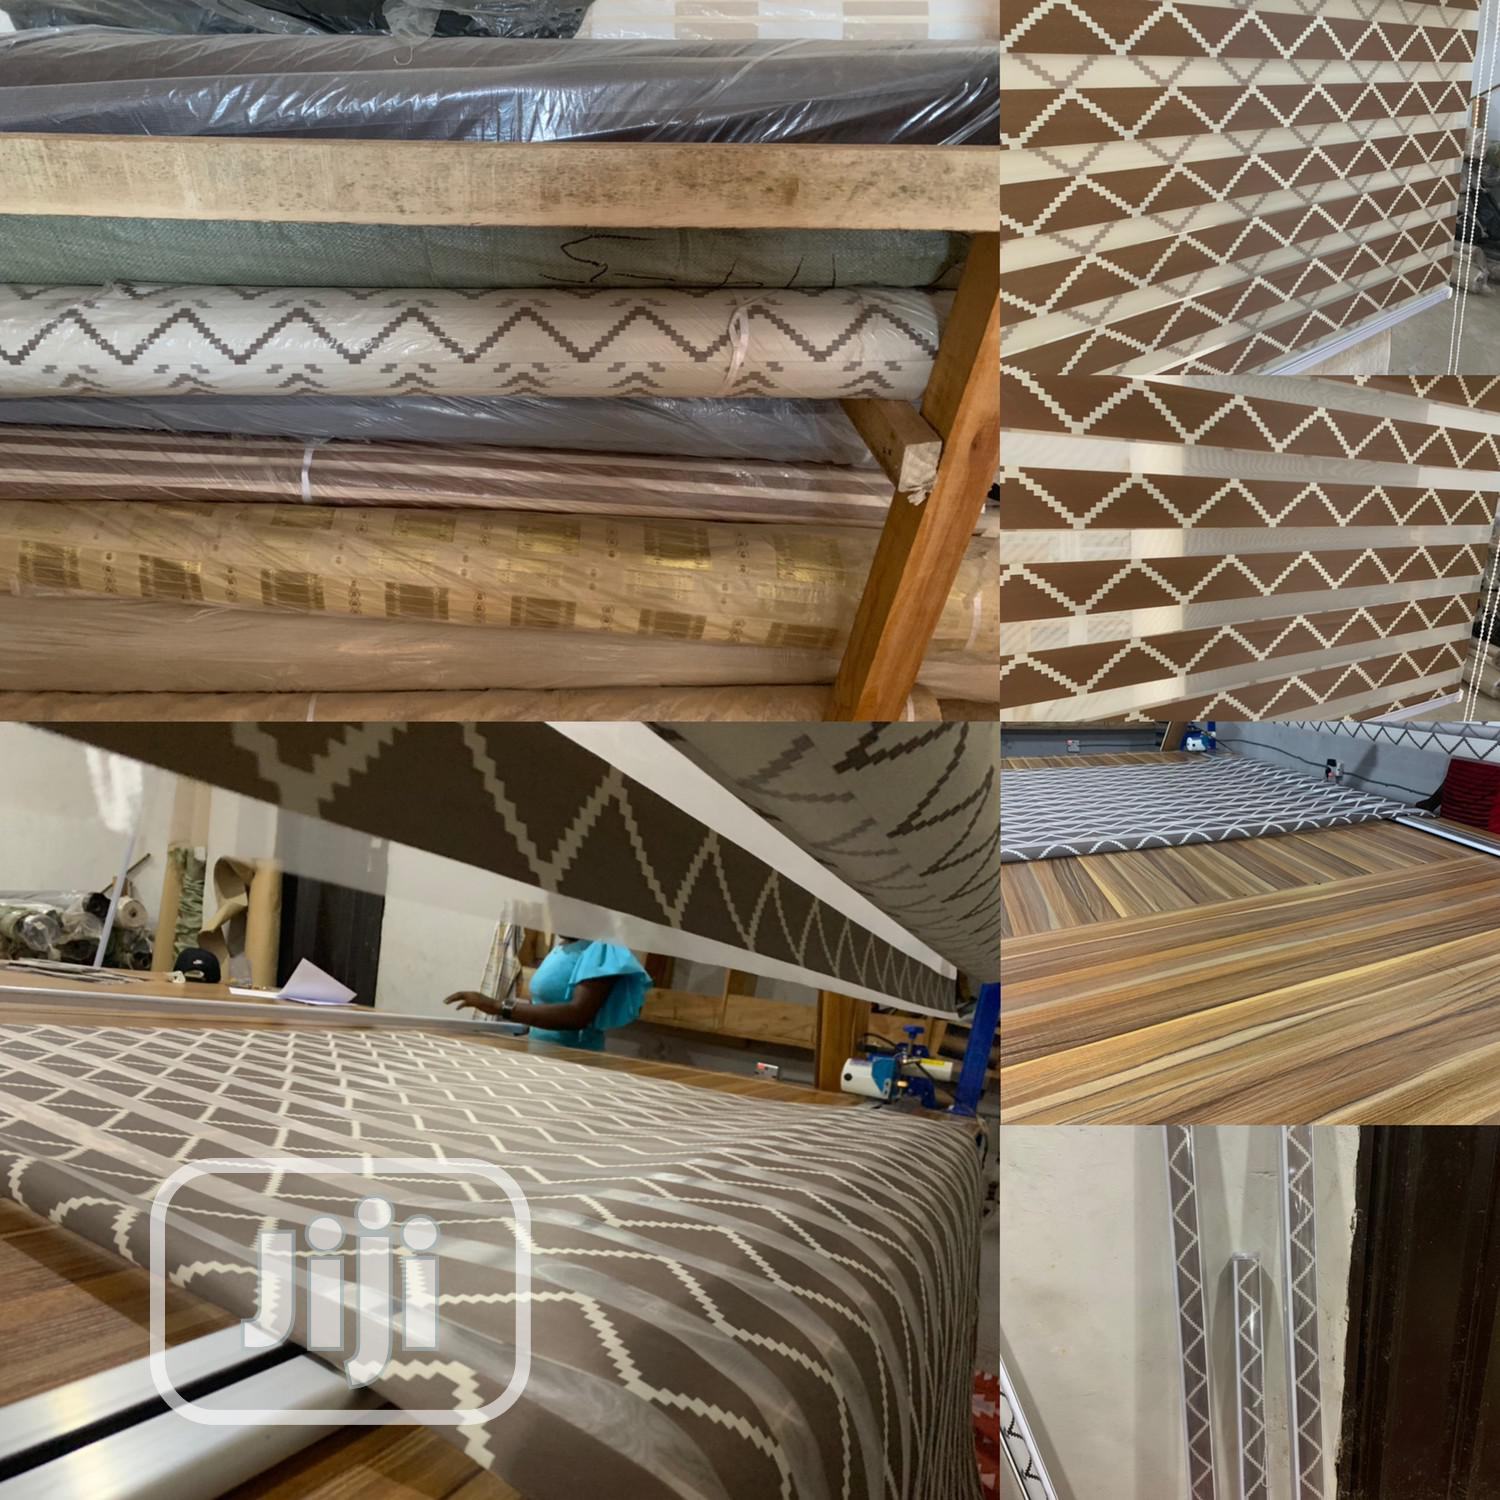 Archive: Black Friday Lozcrz Homes Day And Night Window Blinds 2020 Designs.